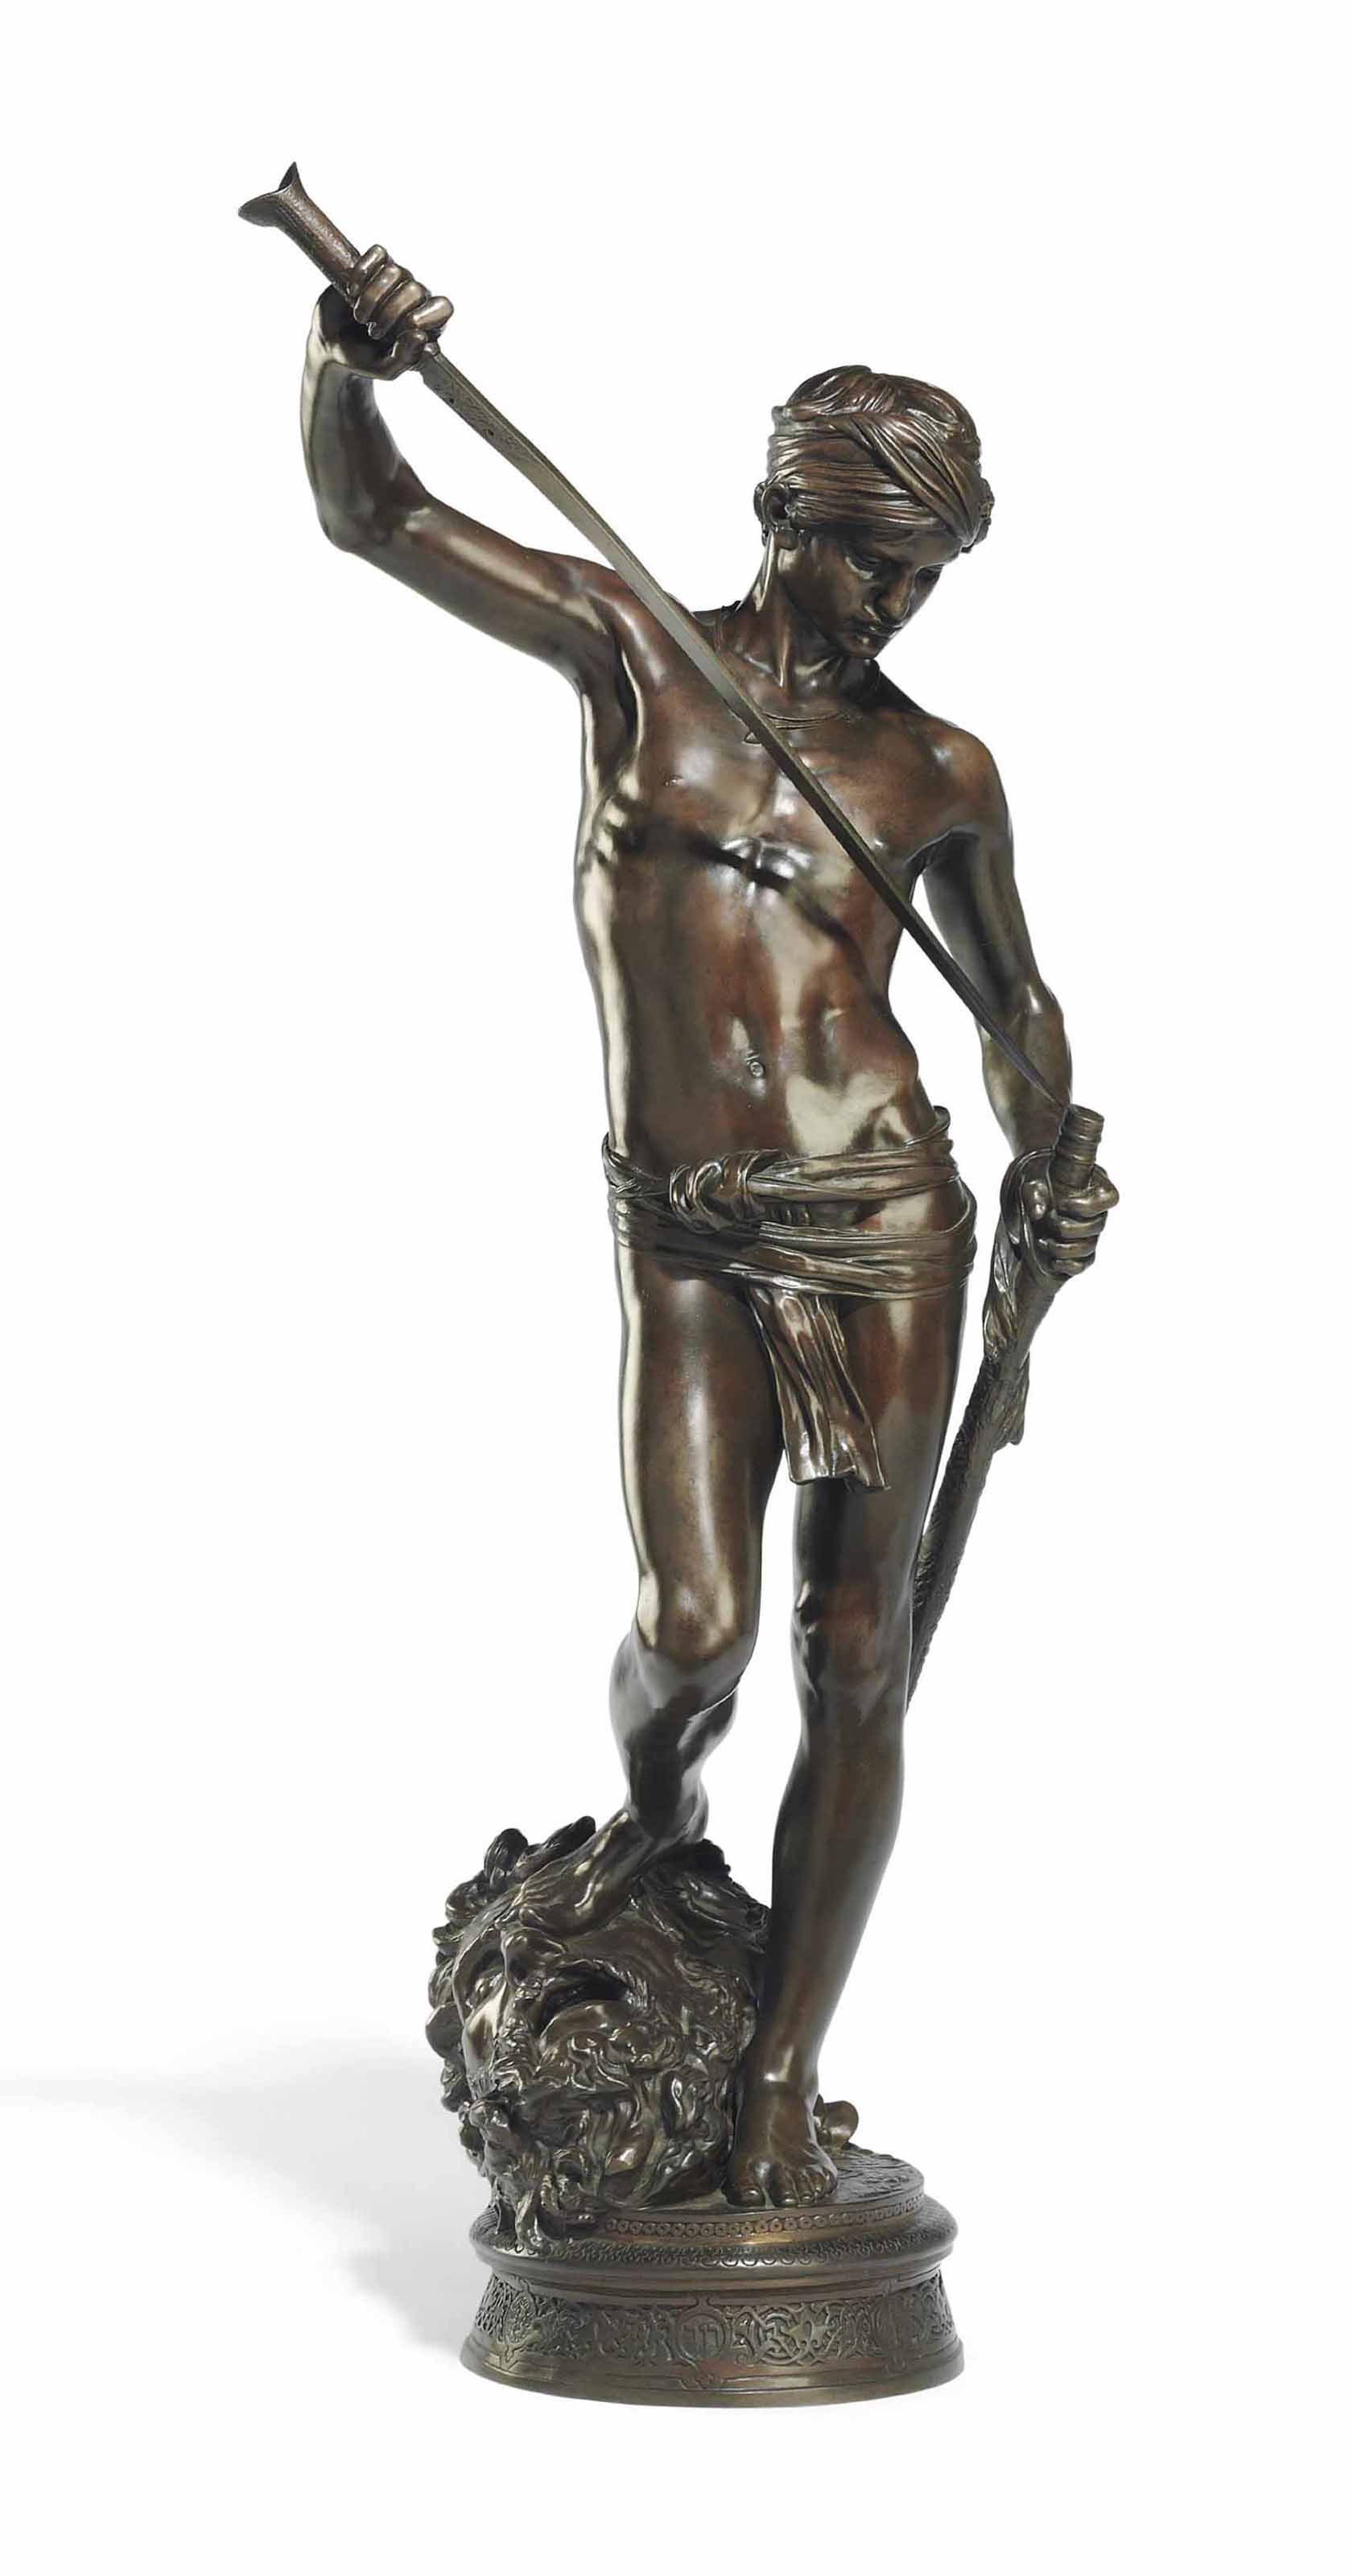 A FRENCH PATINATED BRONZE FIGURE OF 'DAVID VAINQUER'